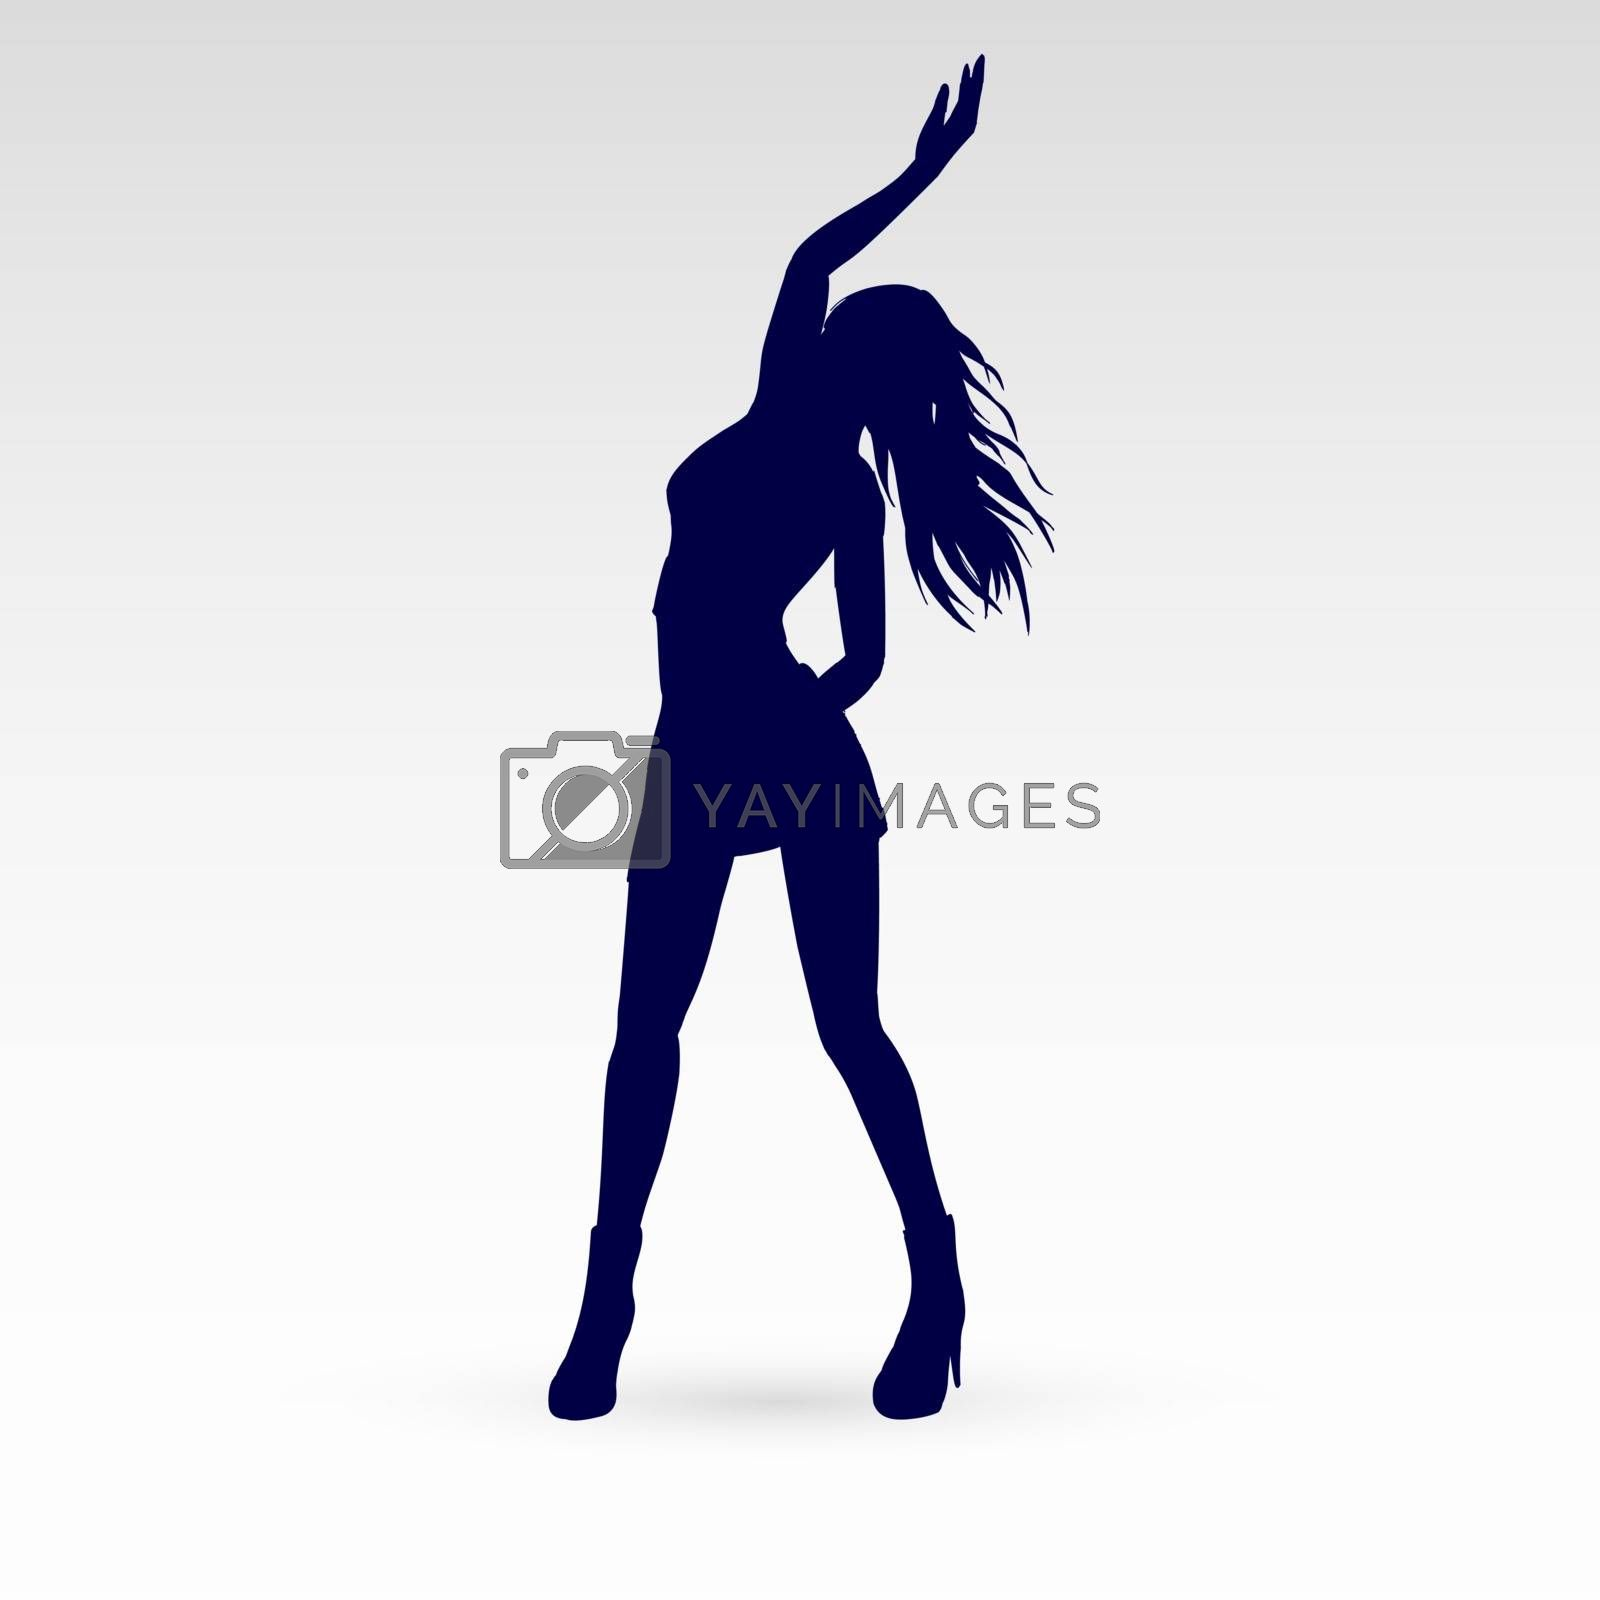 Silhouette of a Modern Dancer Poses in Front of the Gray